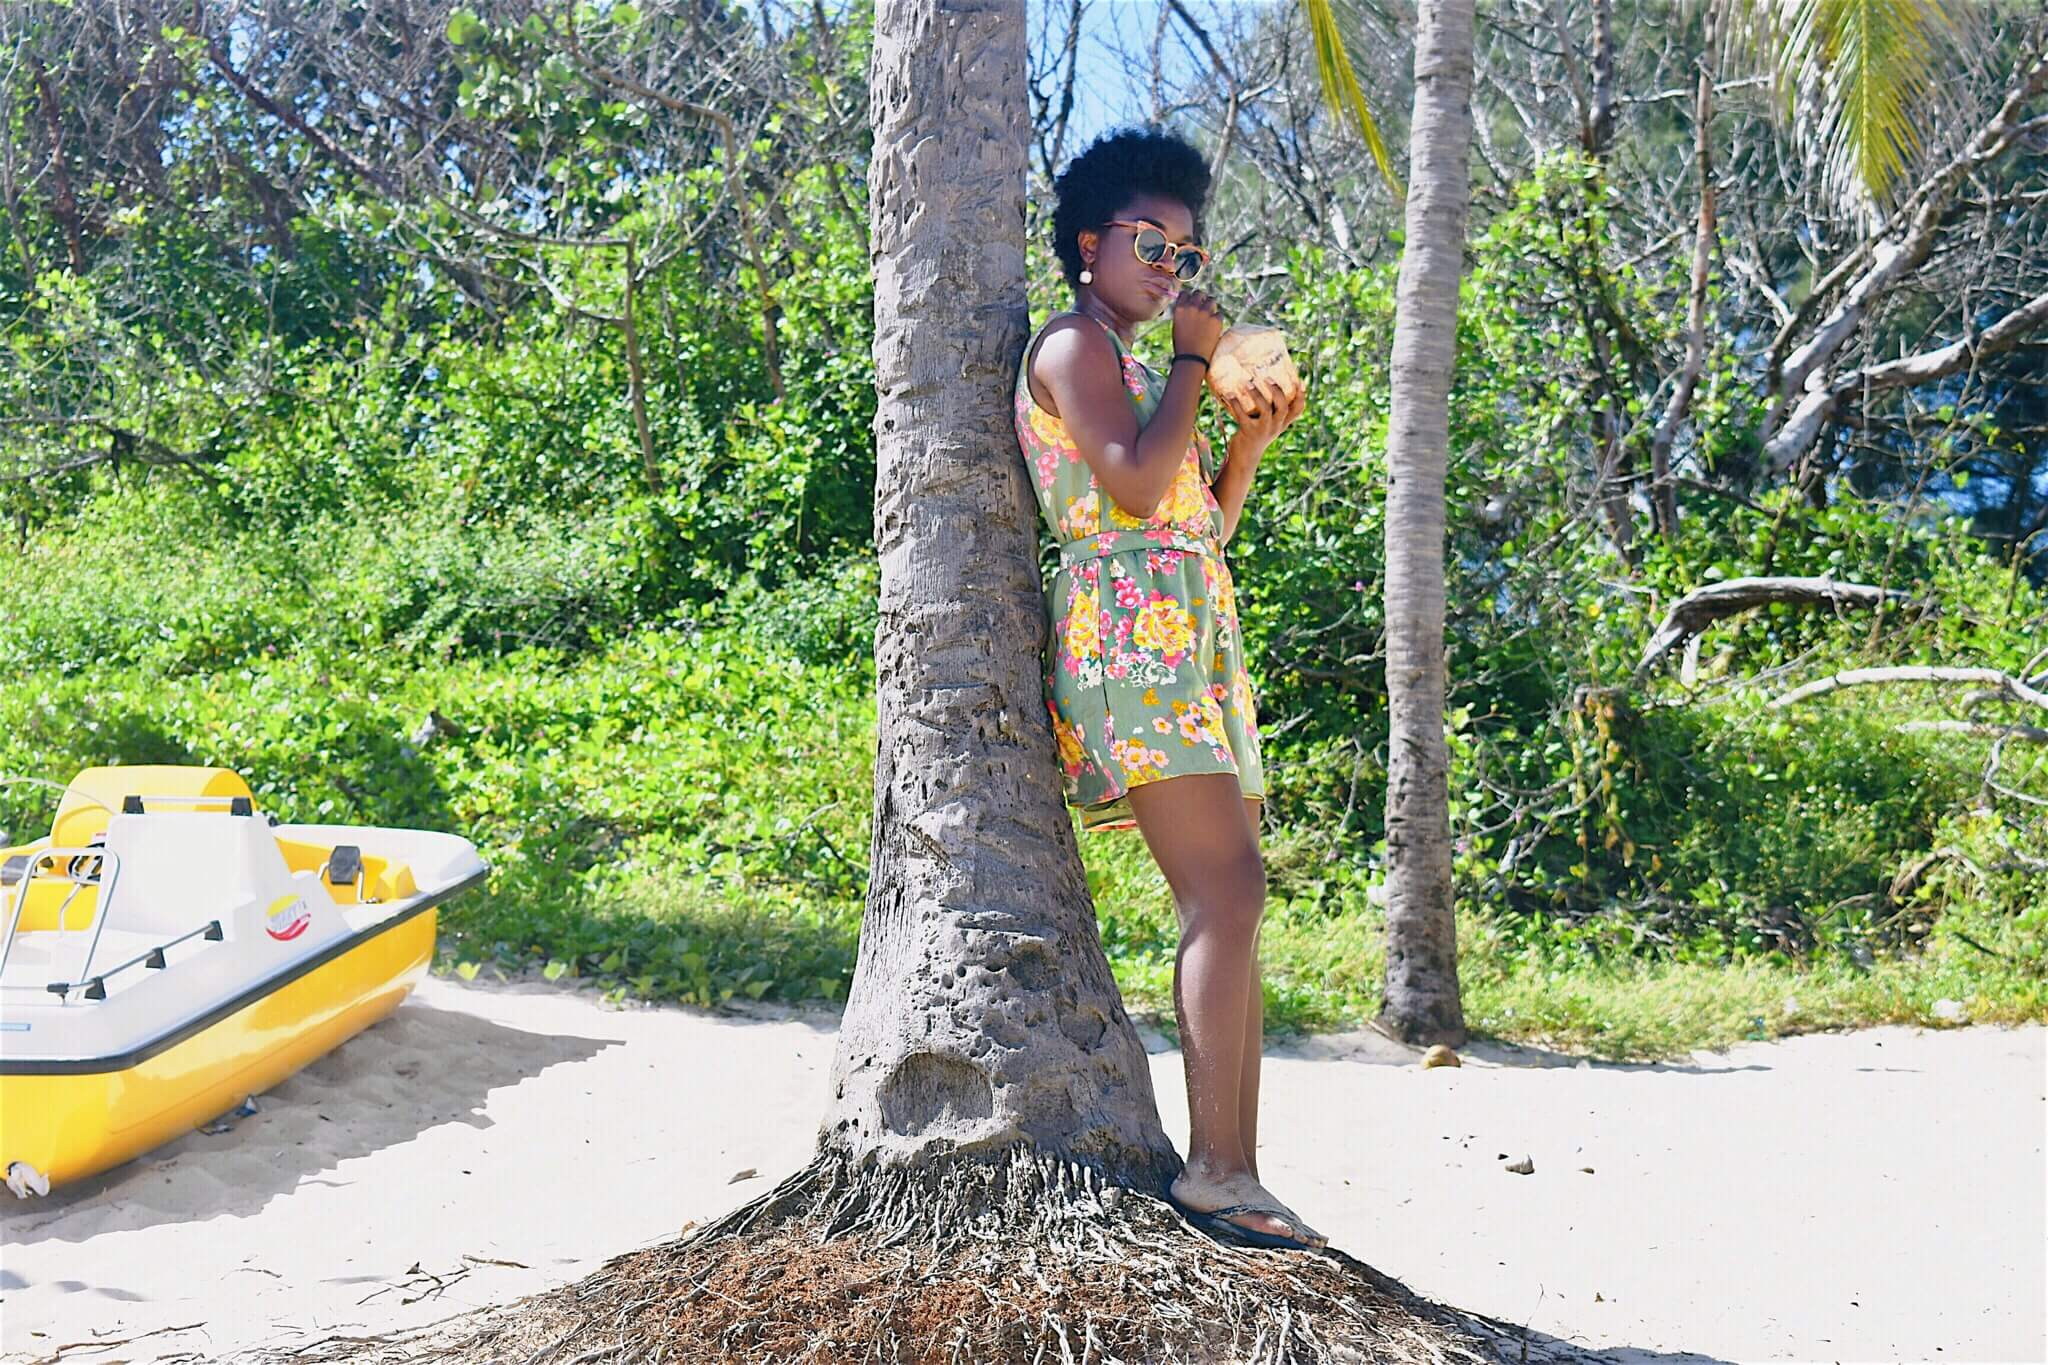 Somto sipping a fresh coconut under a tree at Playa del Este